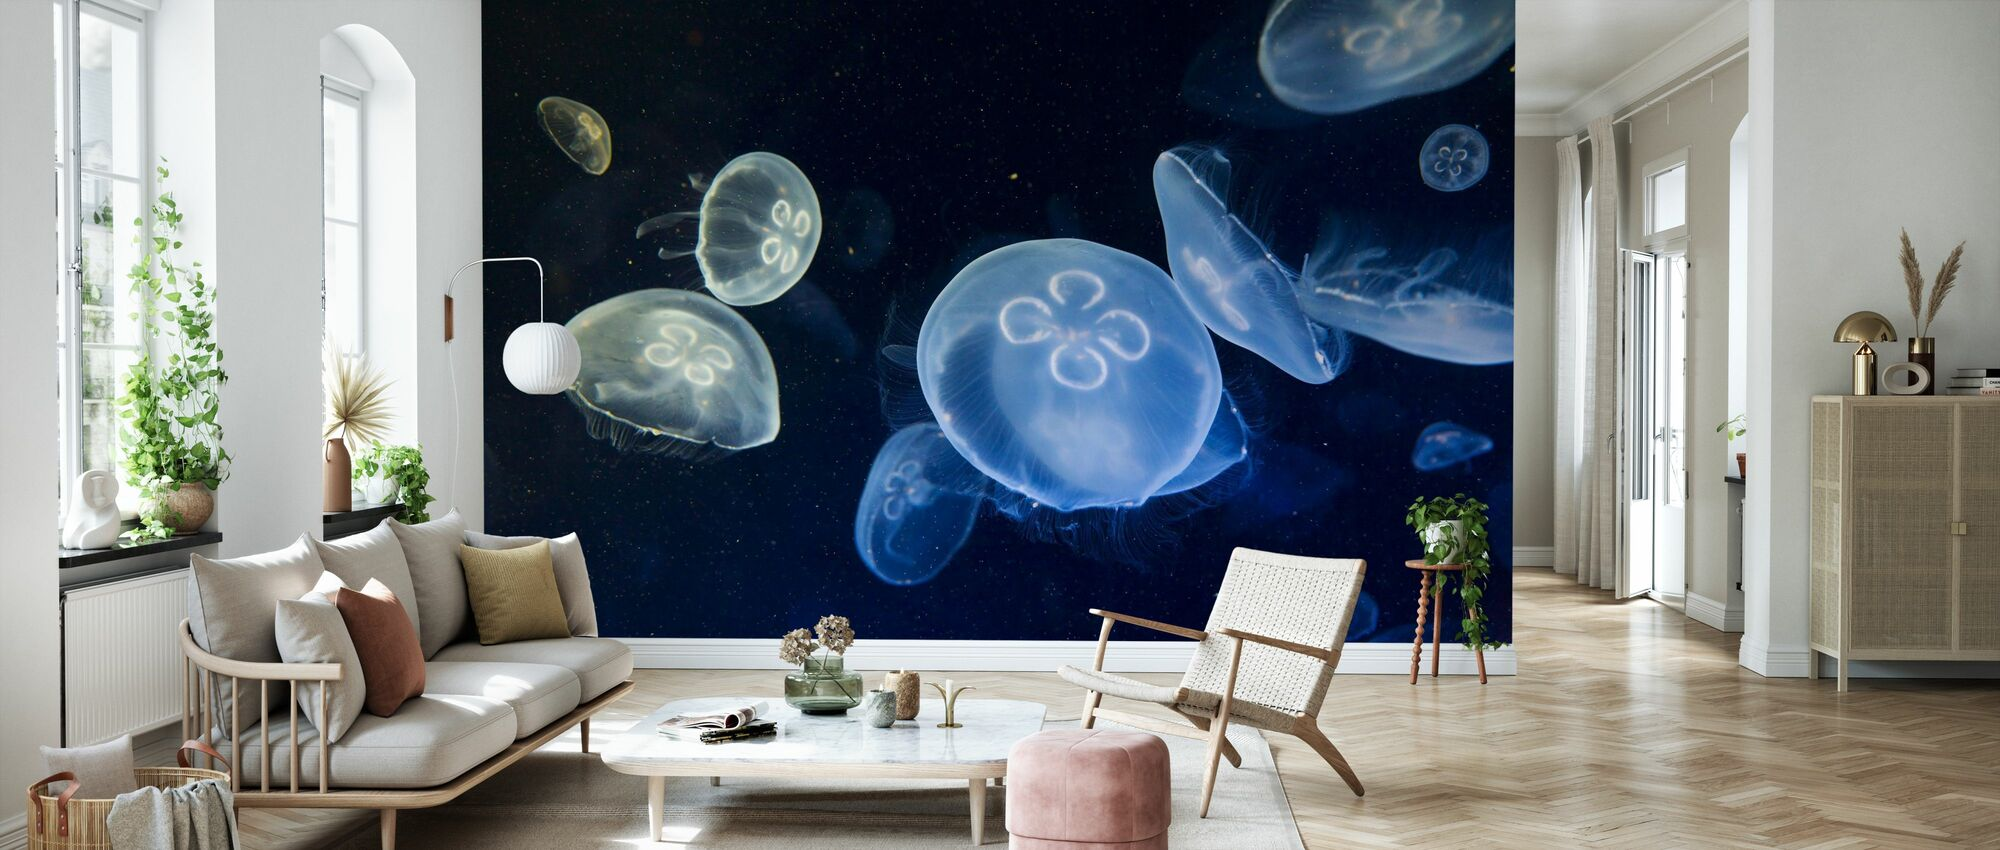 Floating Jellyfish - Wallpaper - Living Room